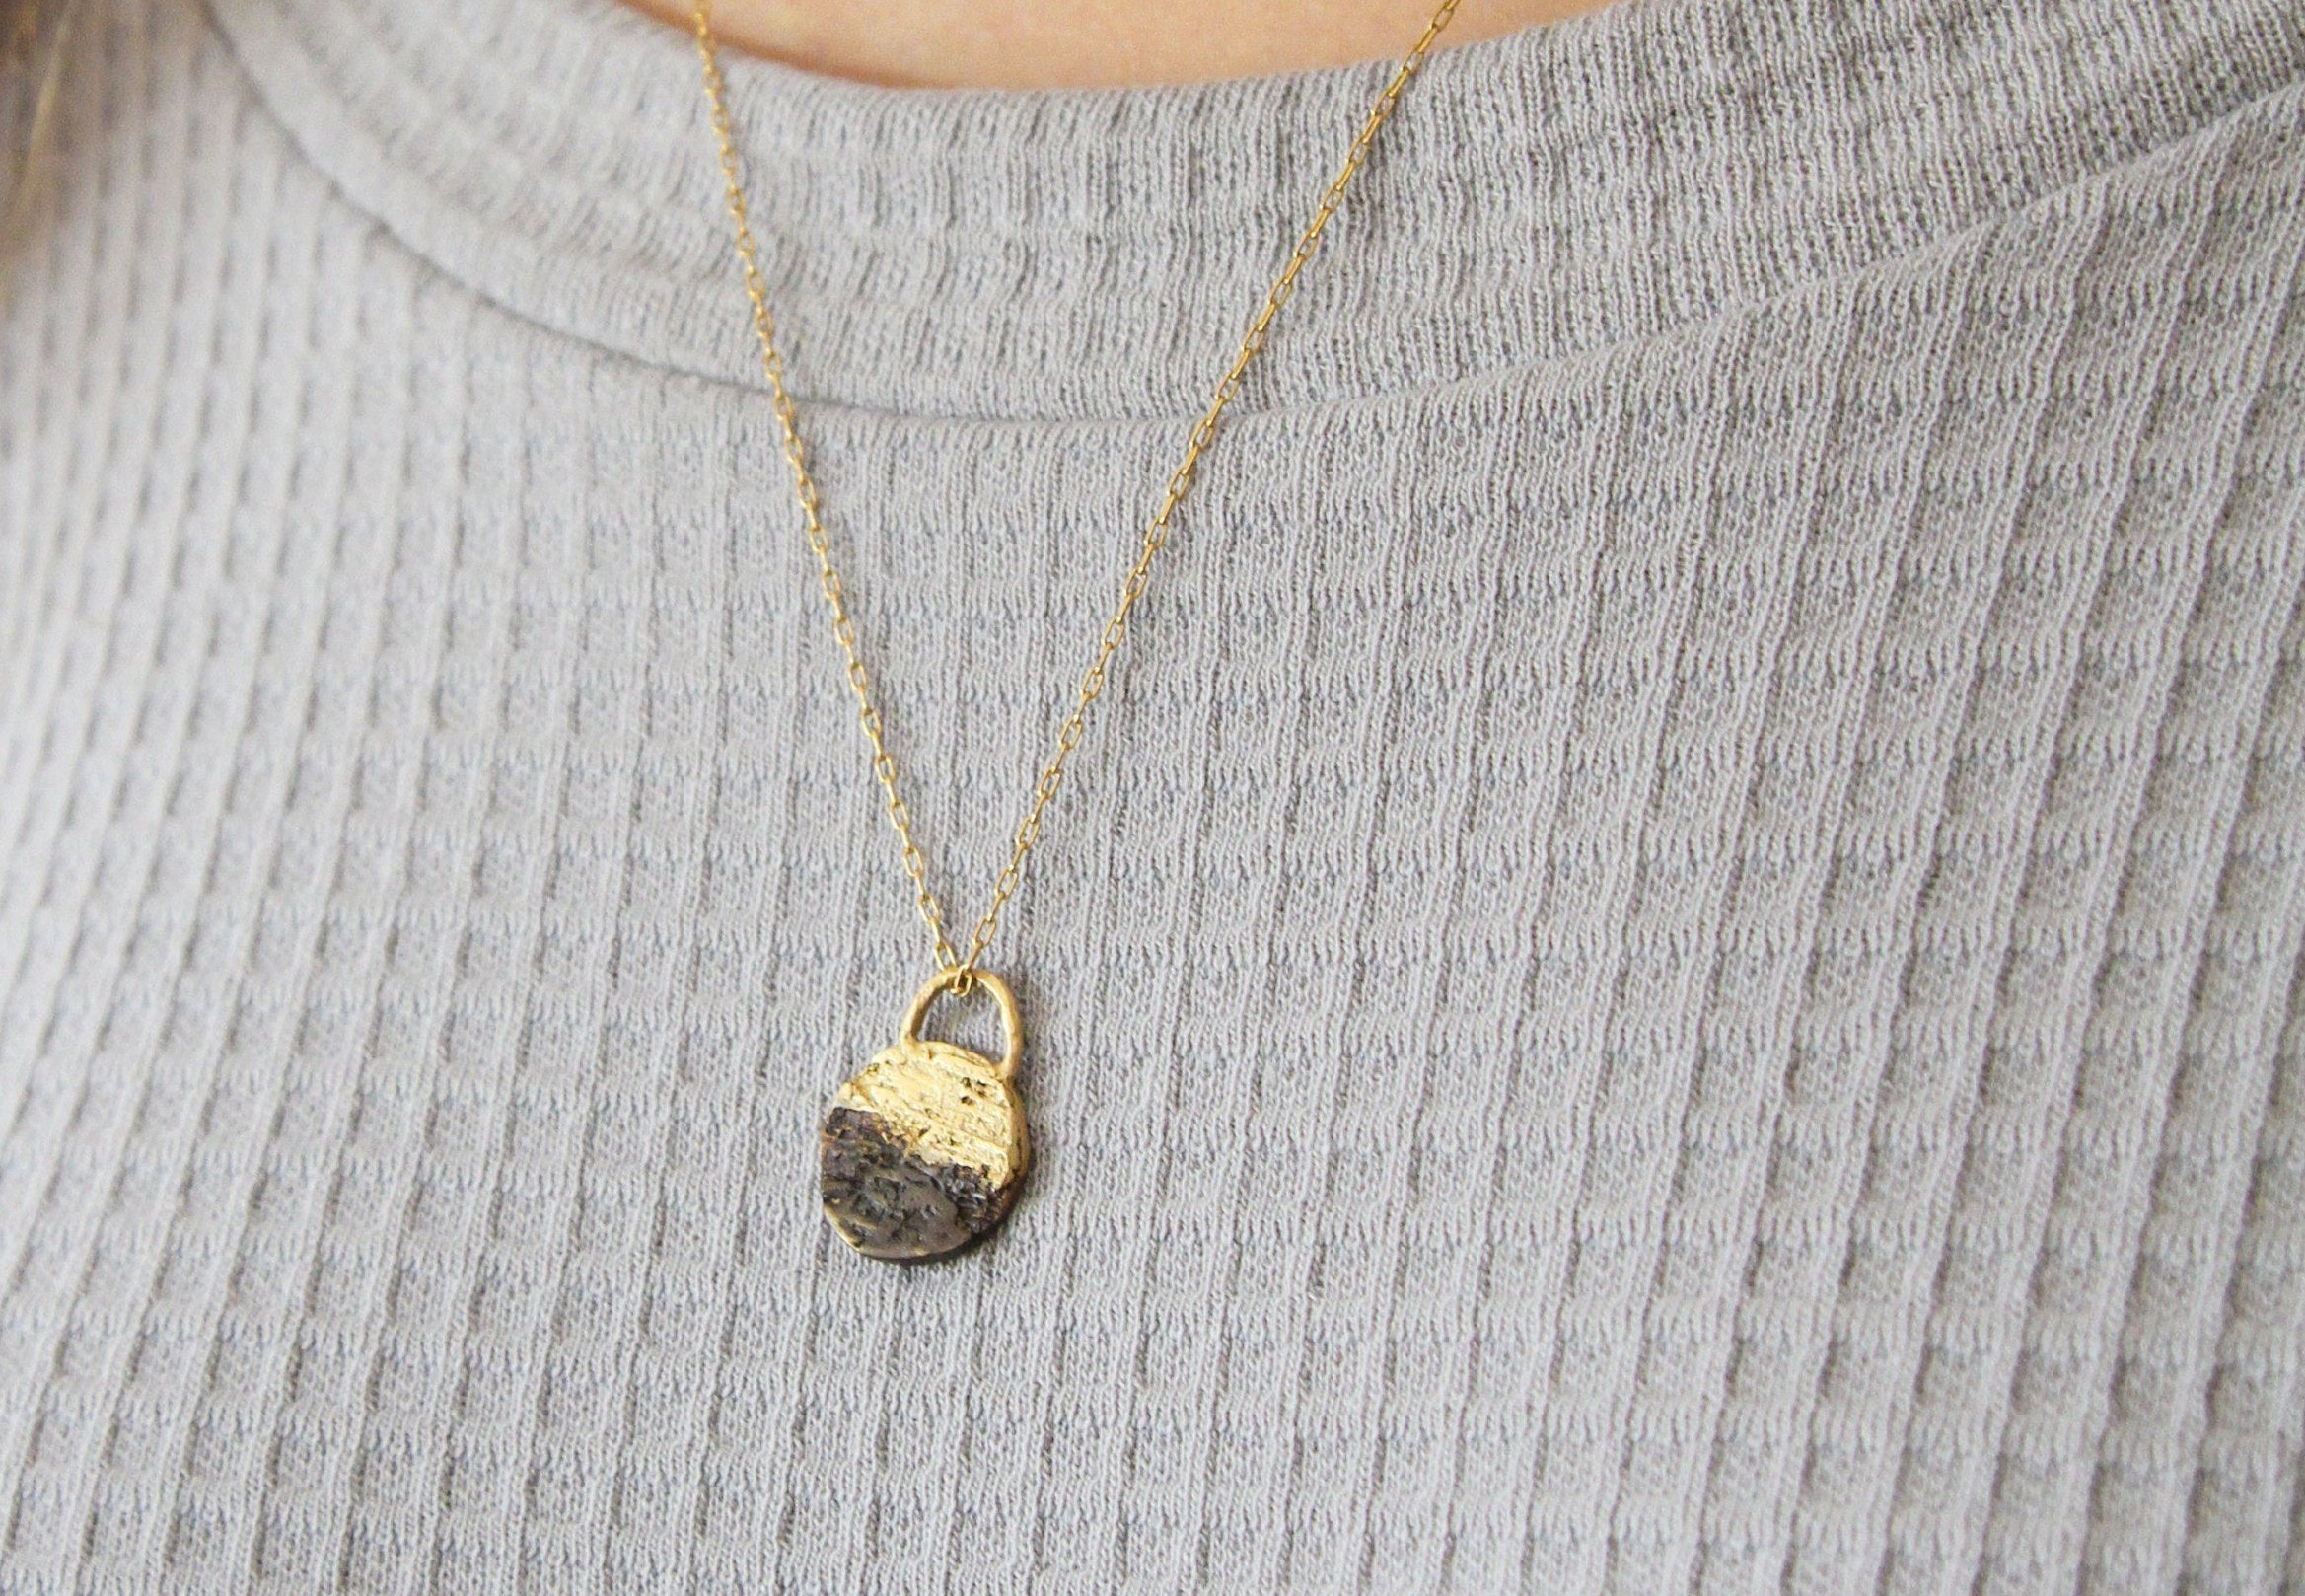 Black And Gold Pendant, Gold Organic Round necklace Pendant, Natural Necklace For Women, Rustic Pendant - hs